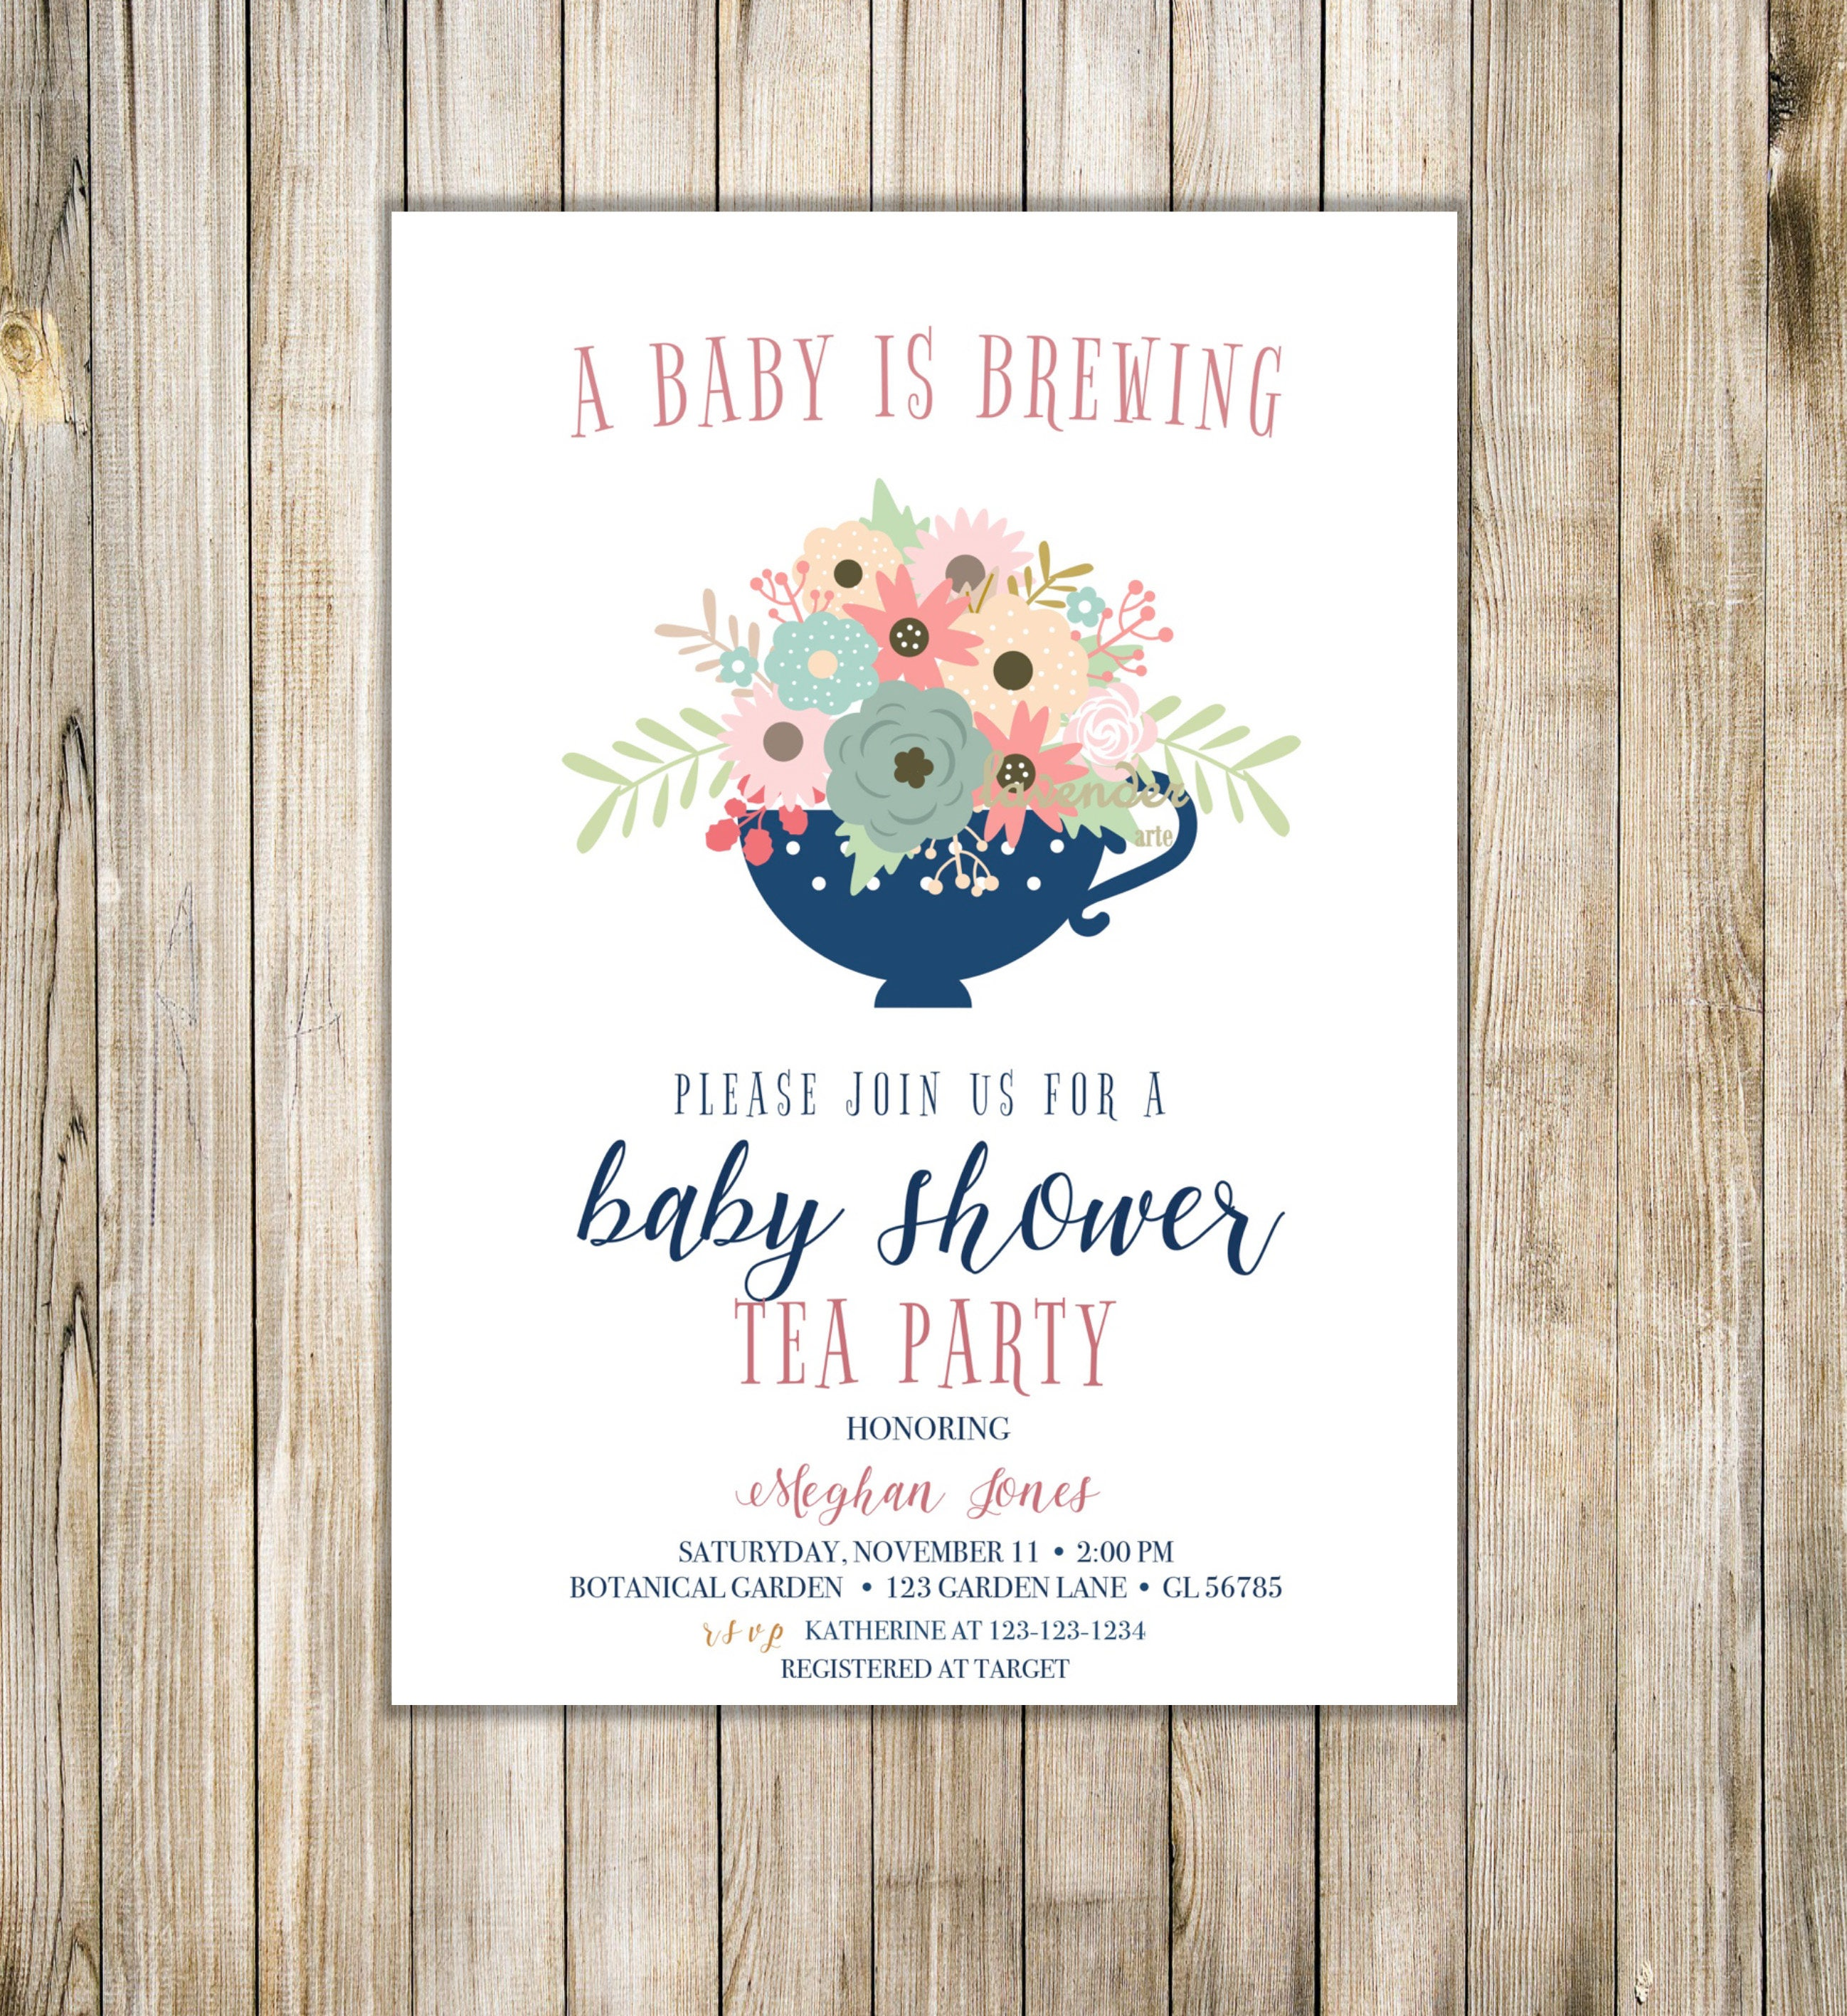 A BABY IS BREWING Party Invitation Floral Baby Shower Tea